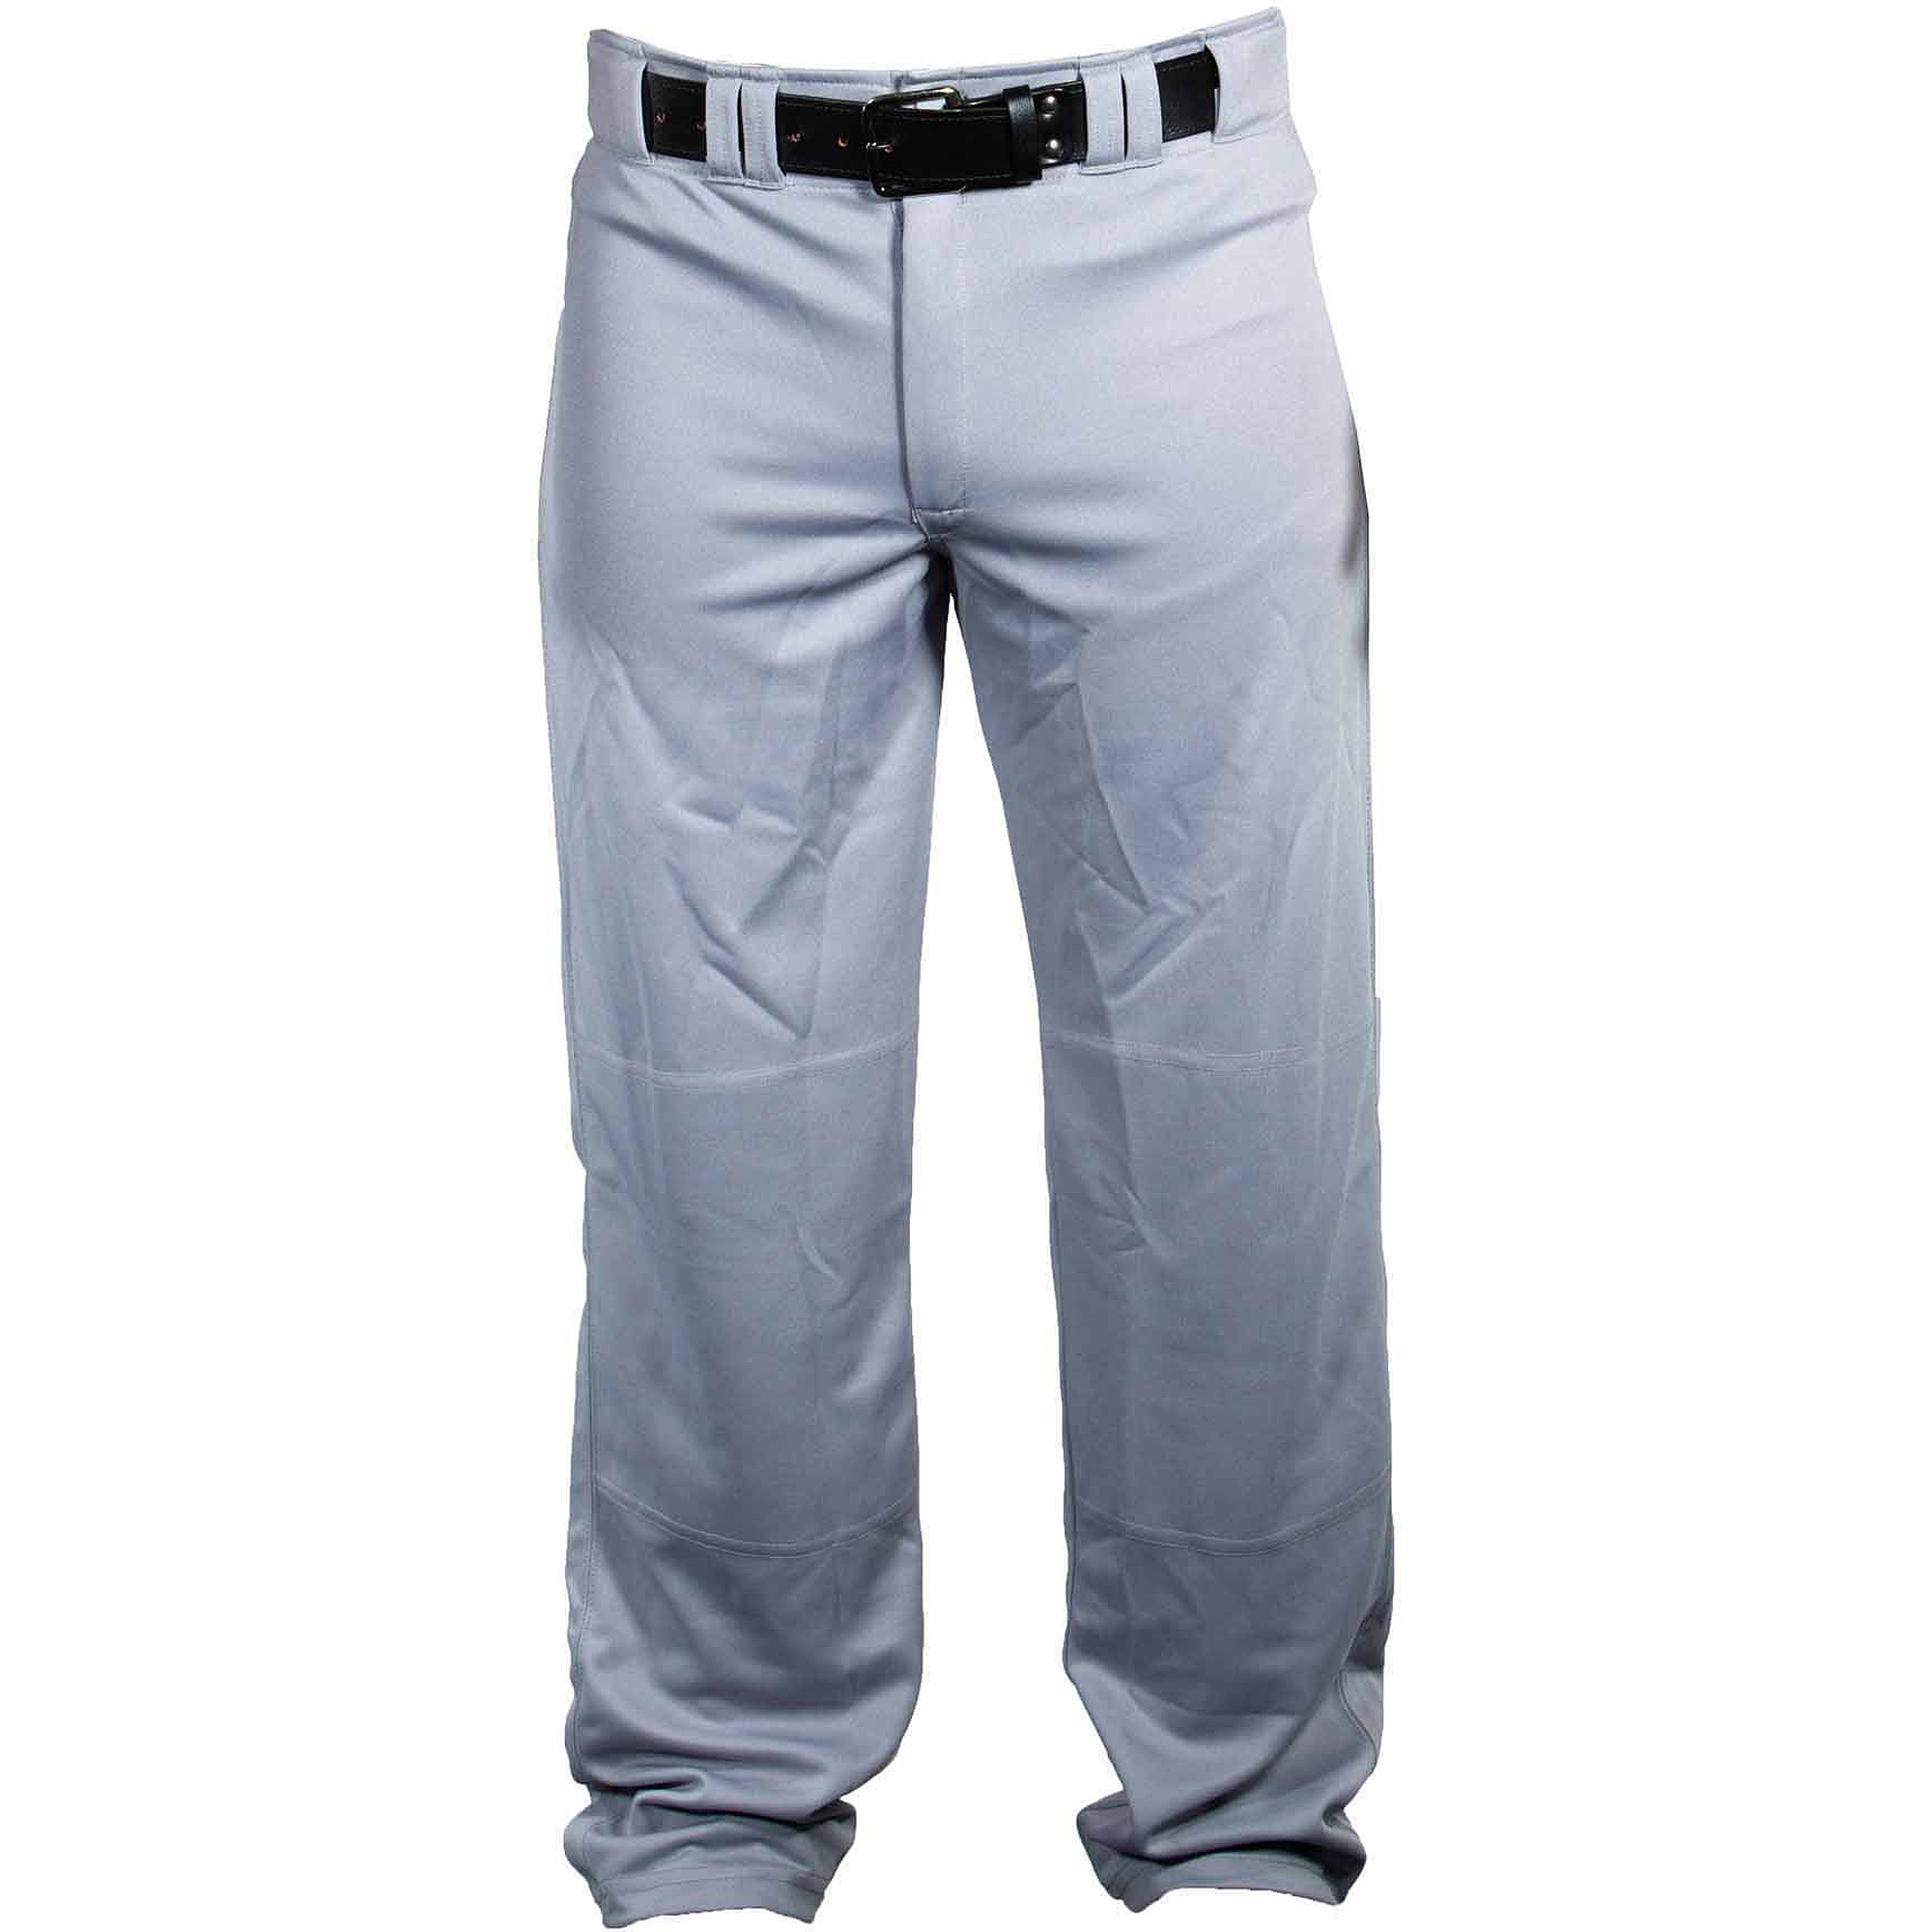 Louisville Slugger Men's Slugger Players Relax-Fit Boot-Cut Pant, Boxed